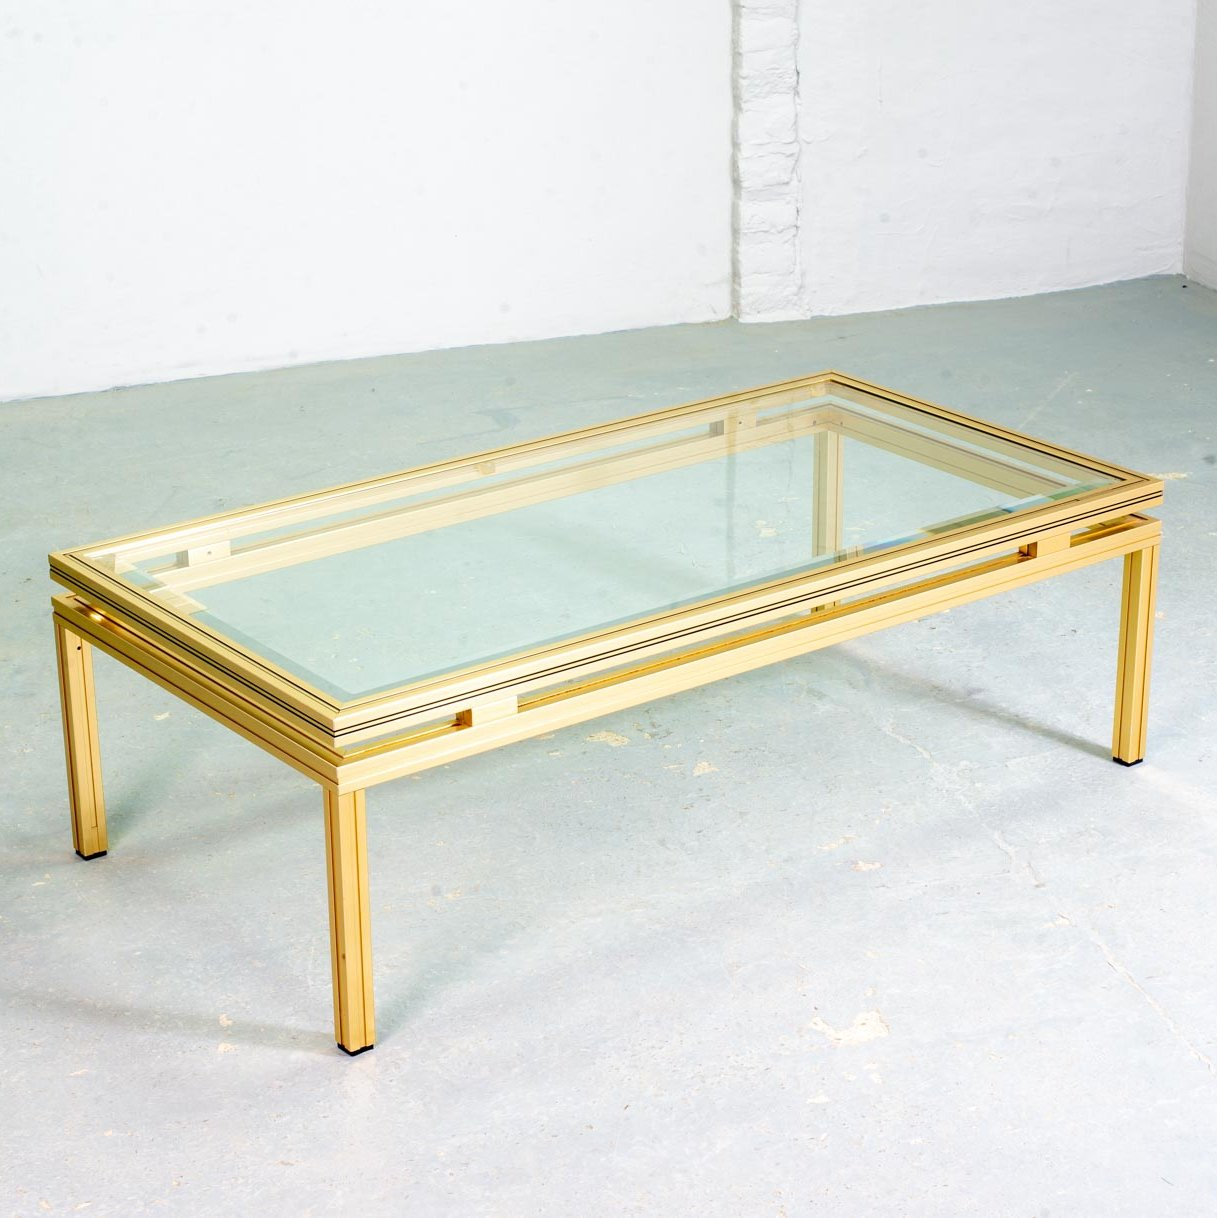 Pierre Vandel Brass Aluminium Coffee Table With Glass Top France 1970s 116783